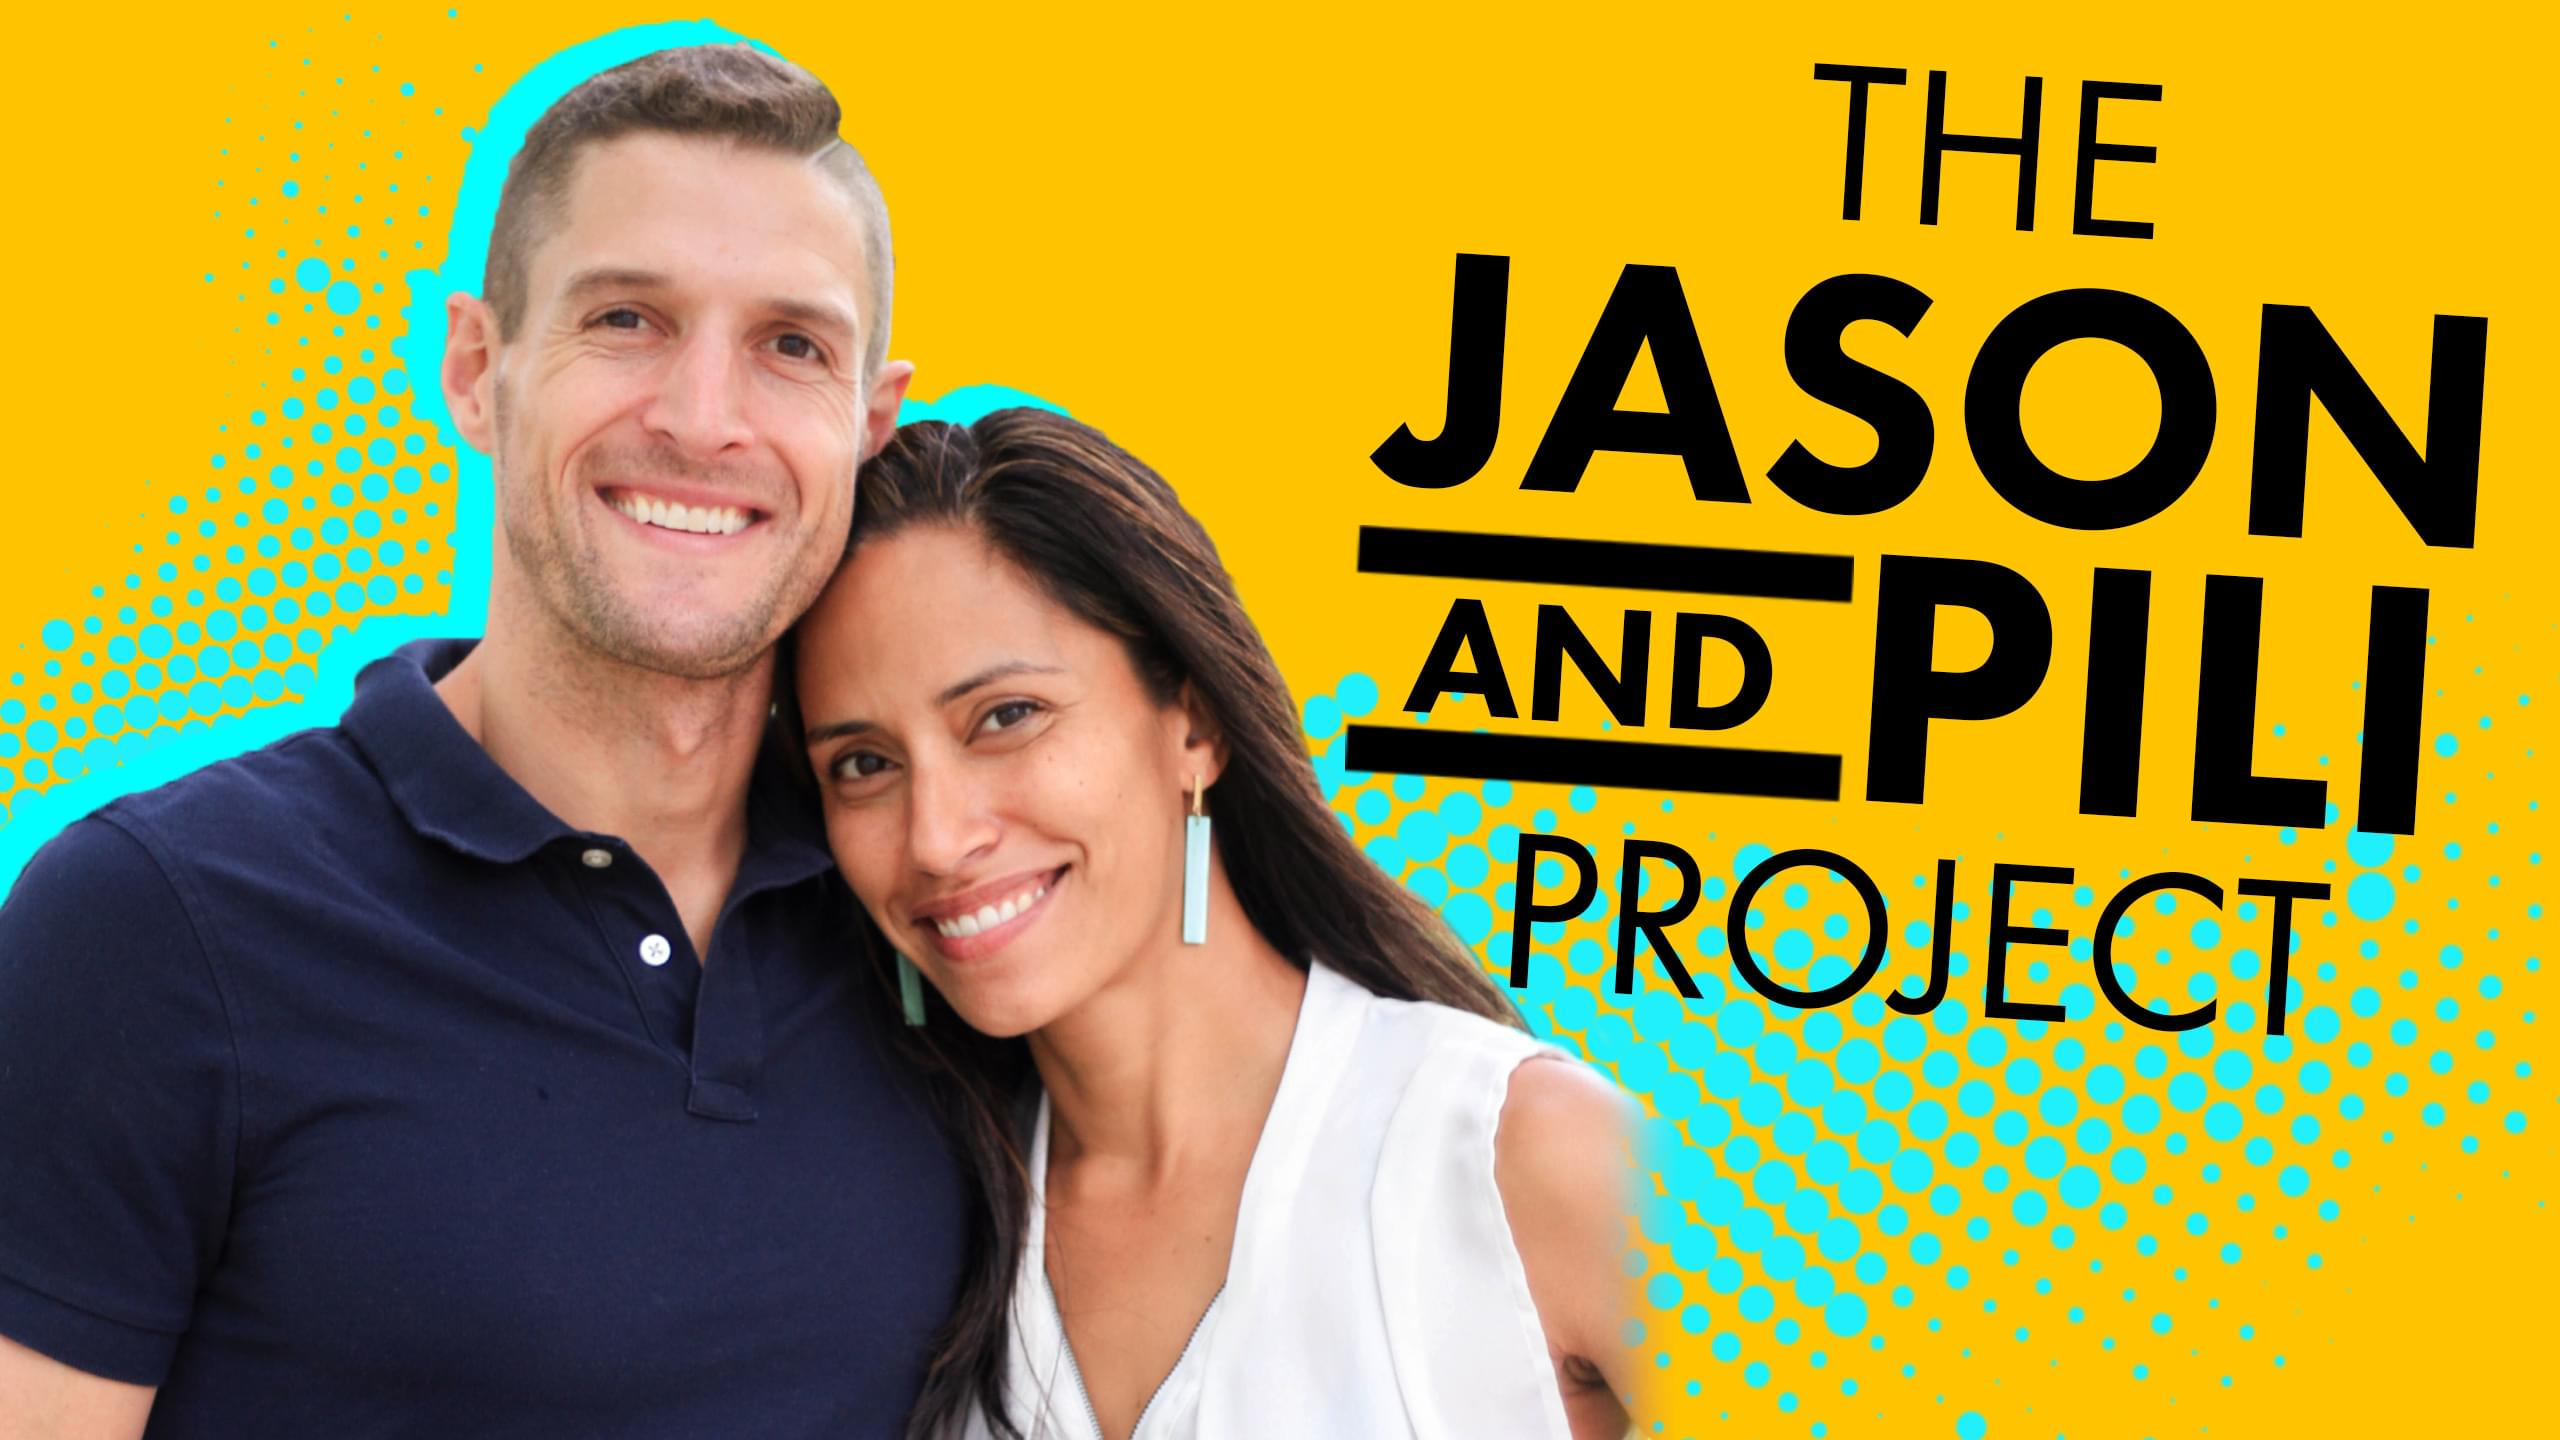 The Jason and Pili Project